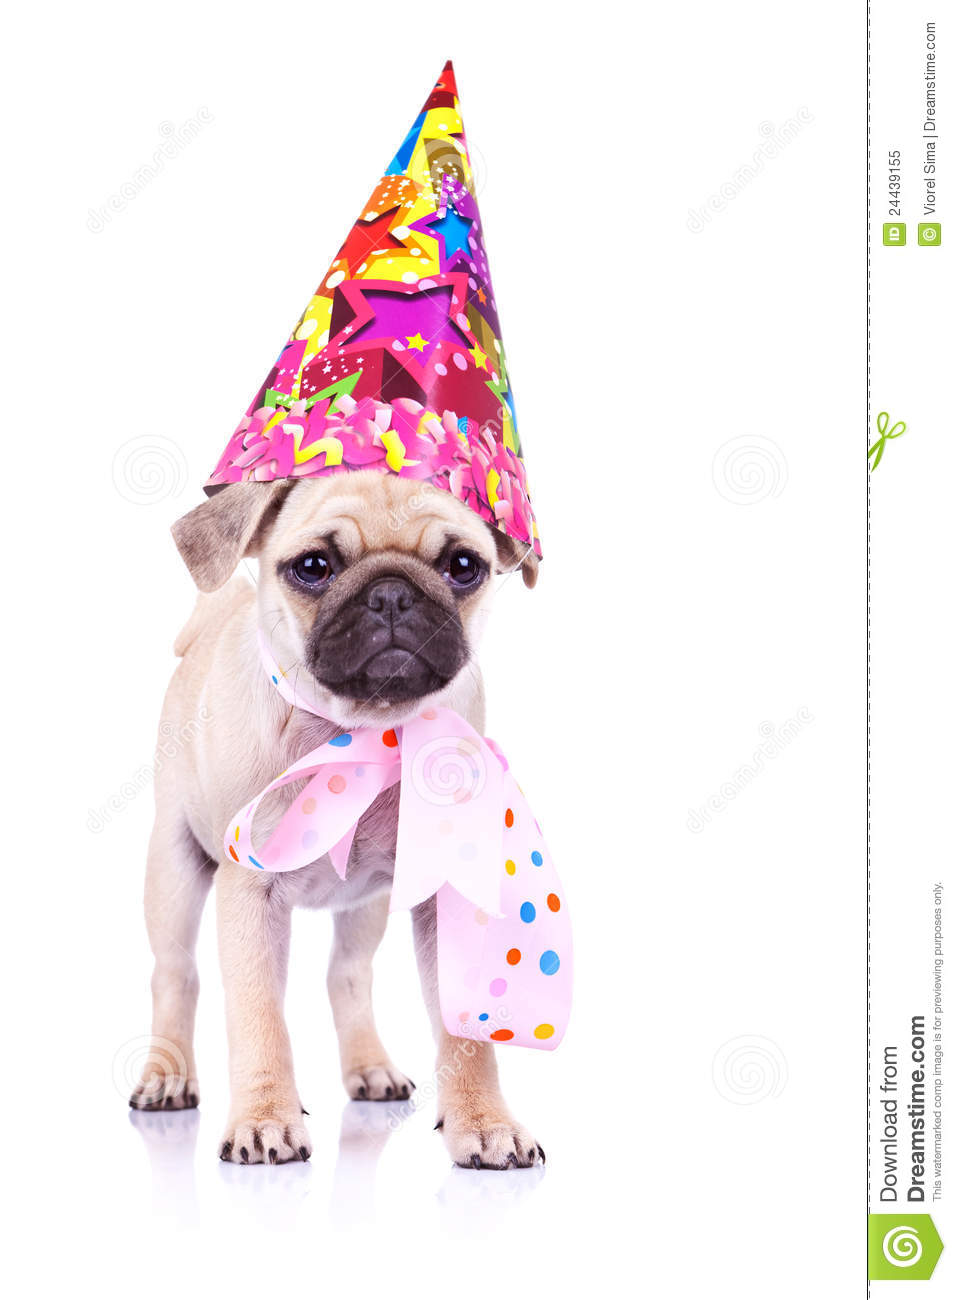 Cute Mops Puppy Dog Ready For Party Royalty Free Stock